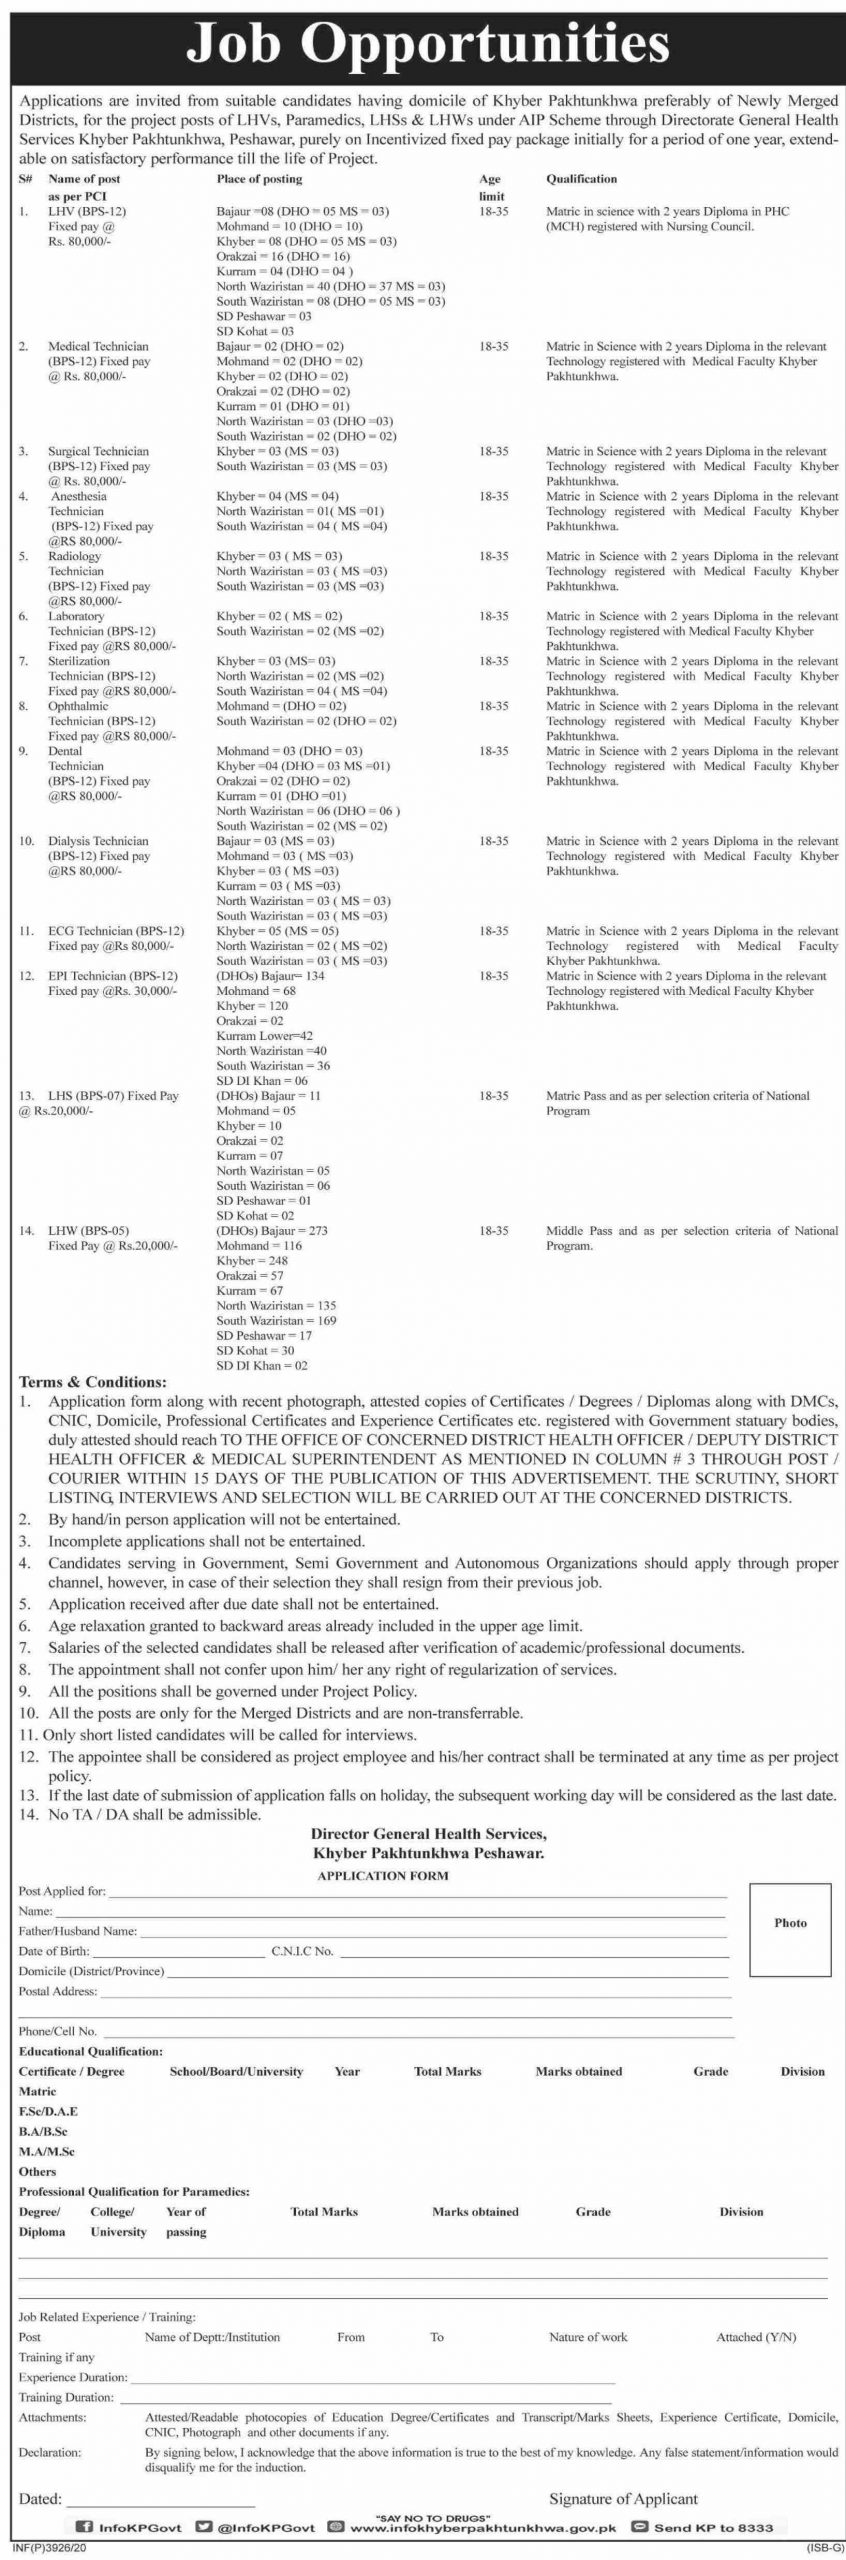 Directorate General Health Services Job